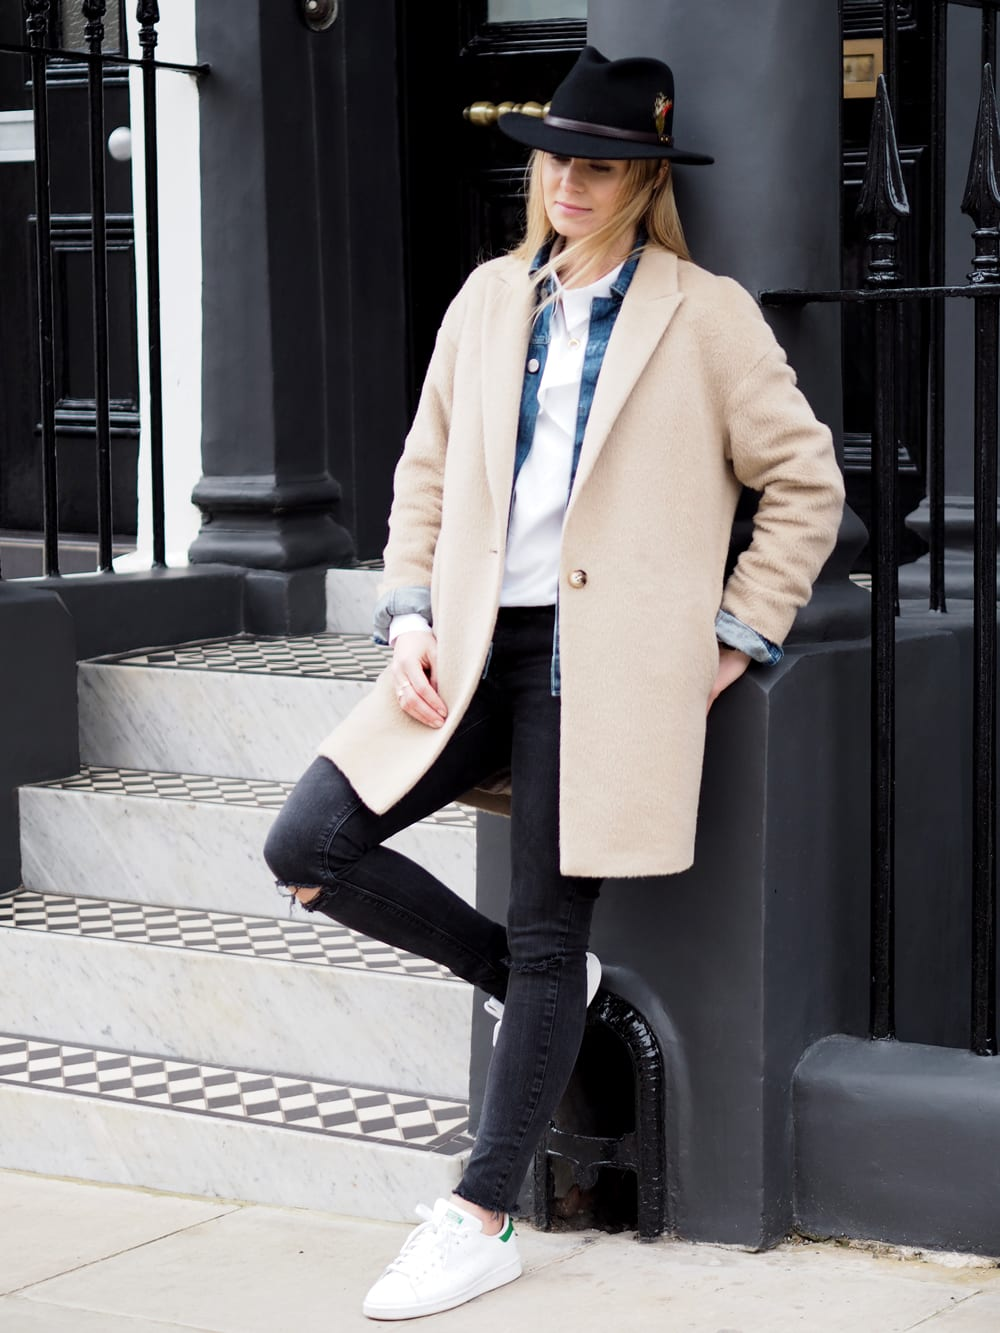 Style&Minimalism | It's Personal | Essential Spring Layers | Wearing Finders Keepers White Shirt, Wåven Denim Jacket, Camel Coat, Black Skinny Jeans, Black Fedora & Stan Smith Trainers